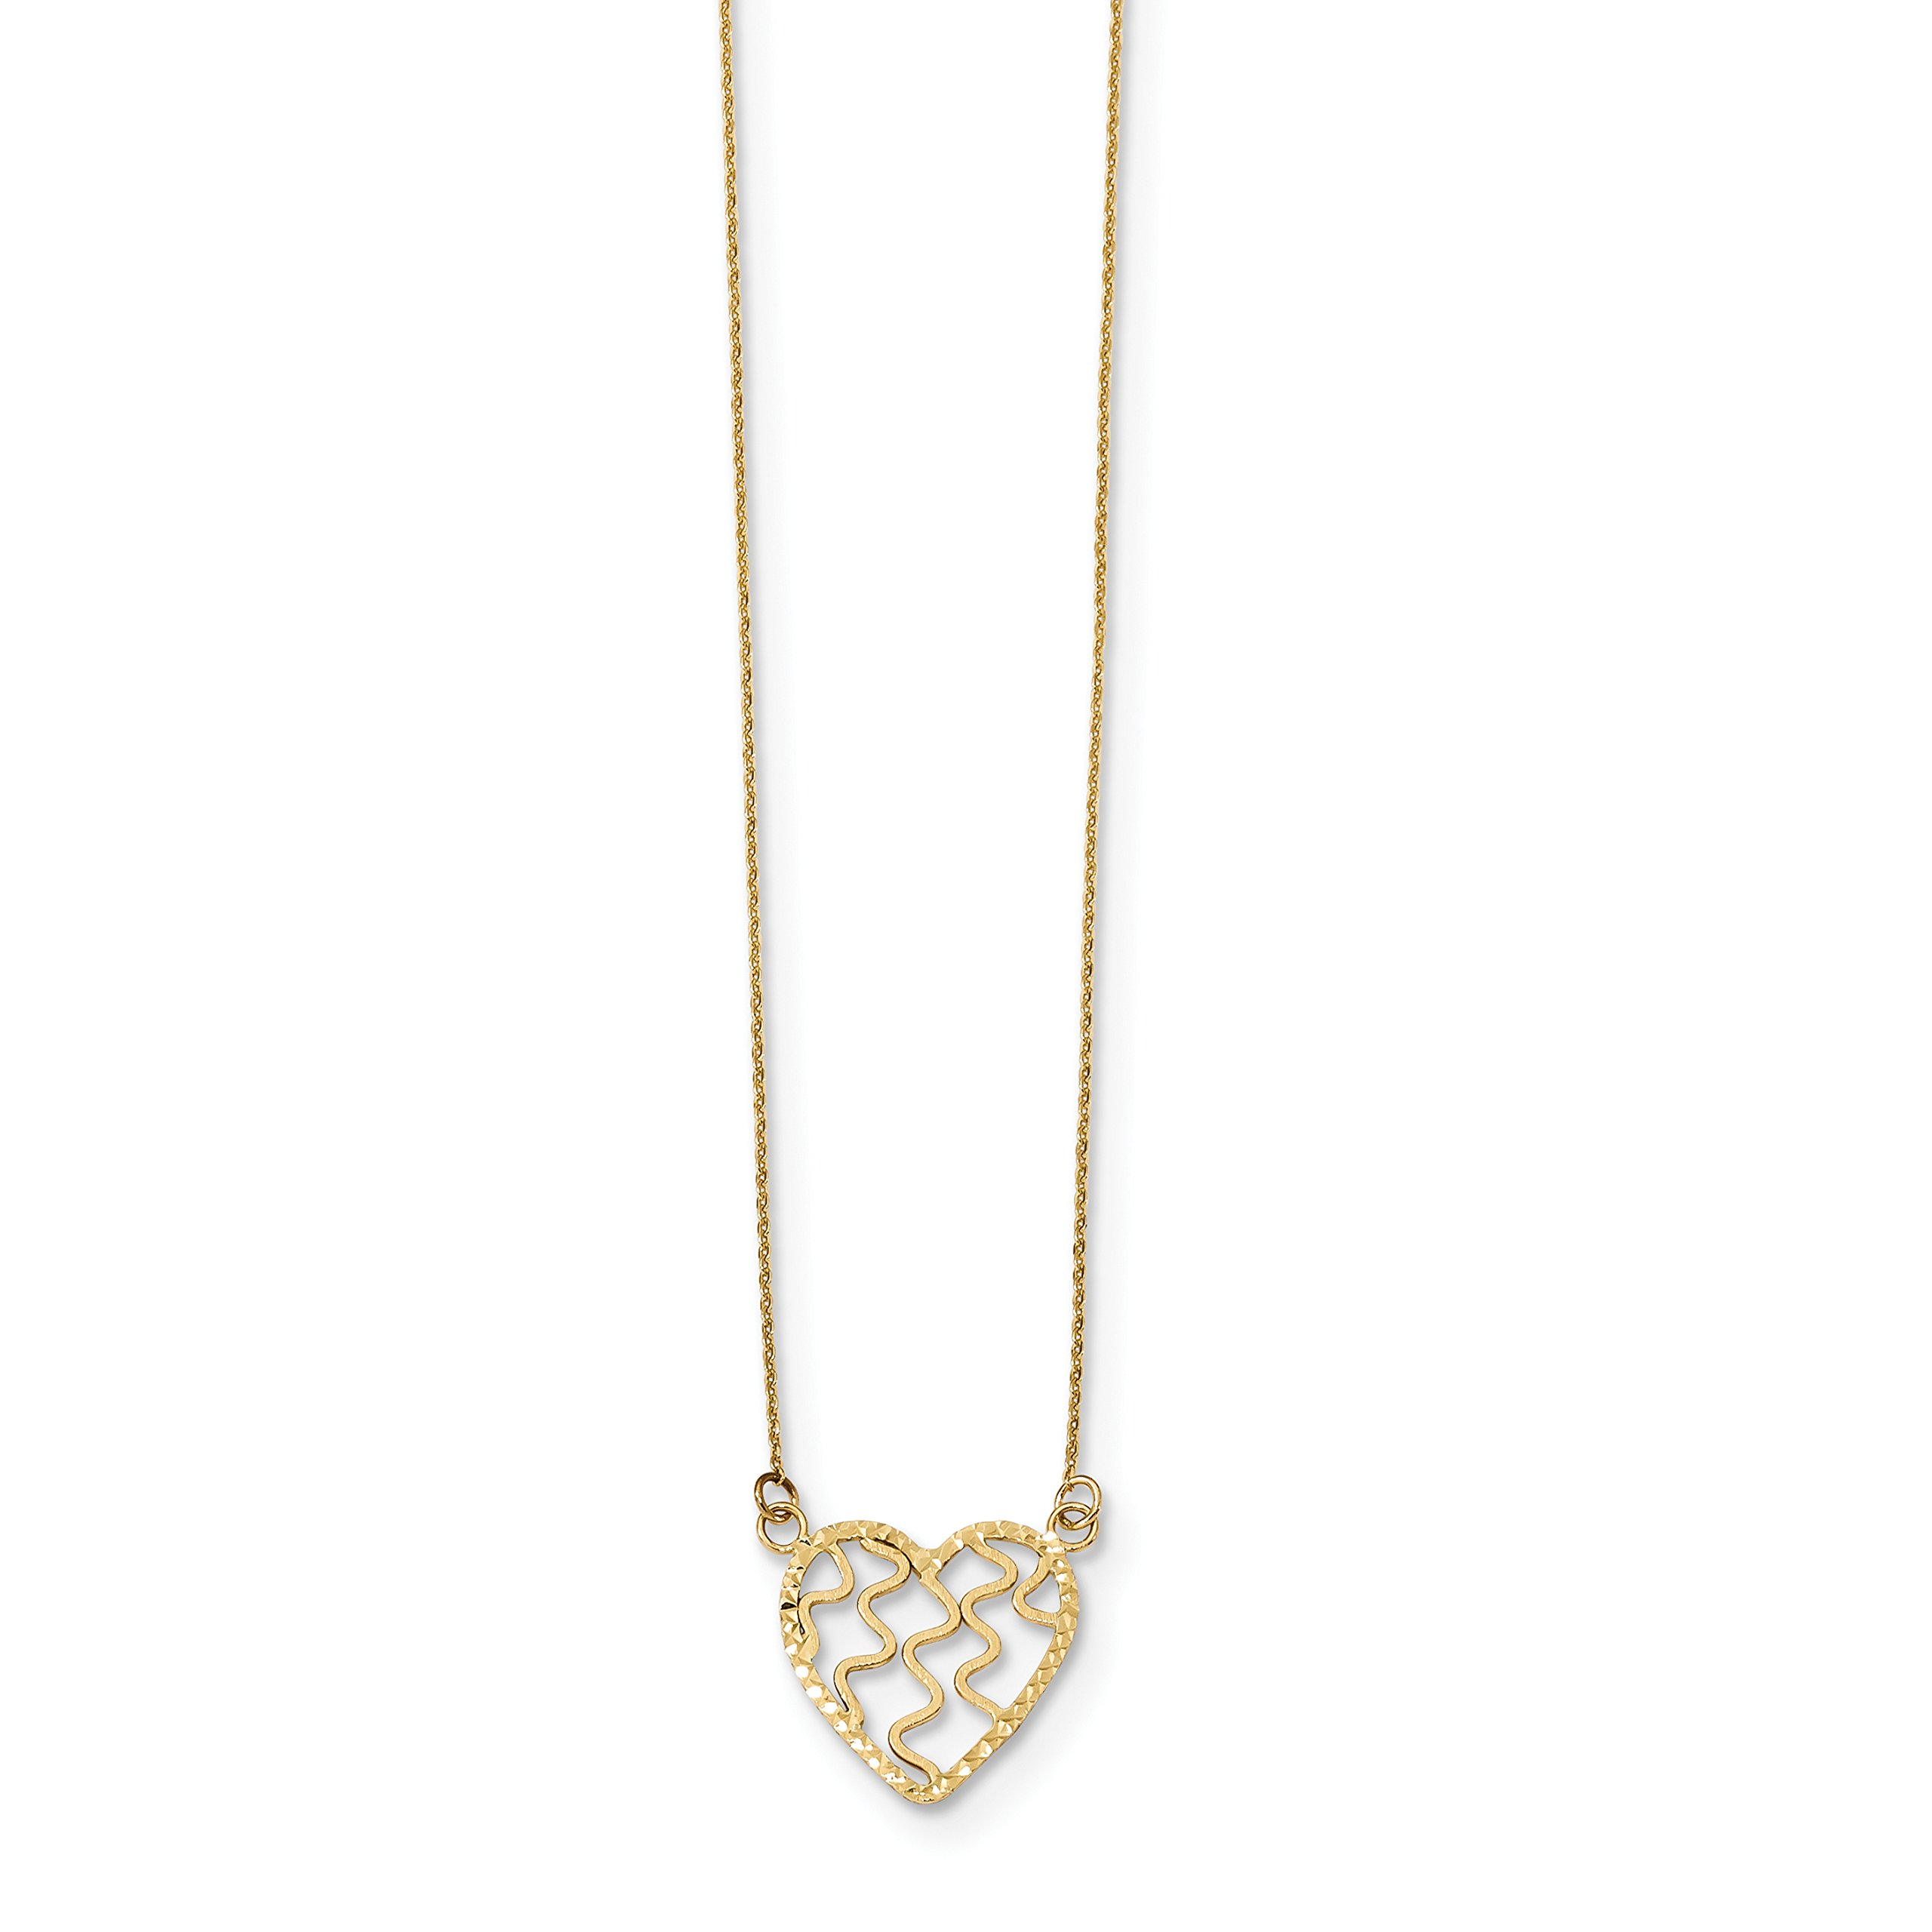 ICE CARATS 14k Yellow Gold Heart 18 Inch Chain Necklace Love Fancy Fine Jewelry Gift Set For Women Heart